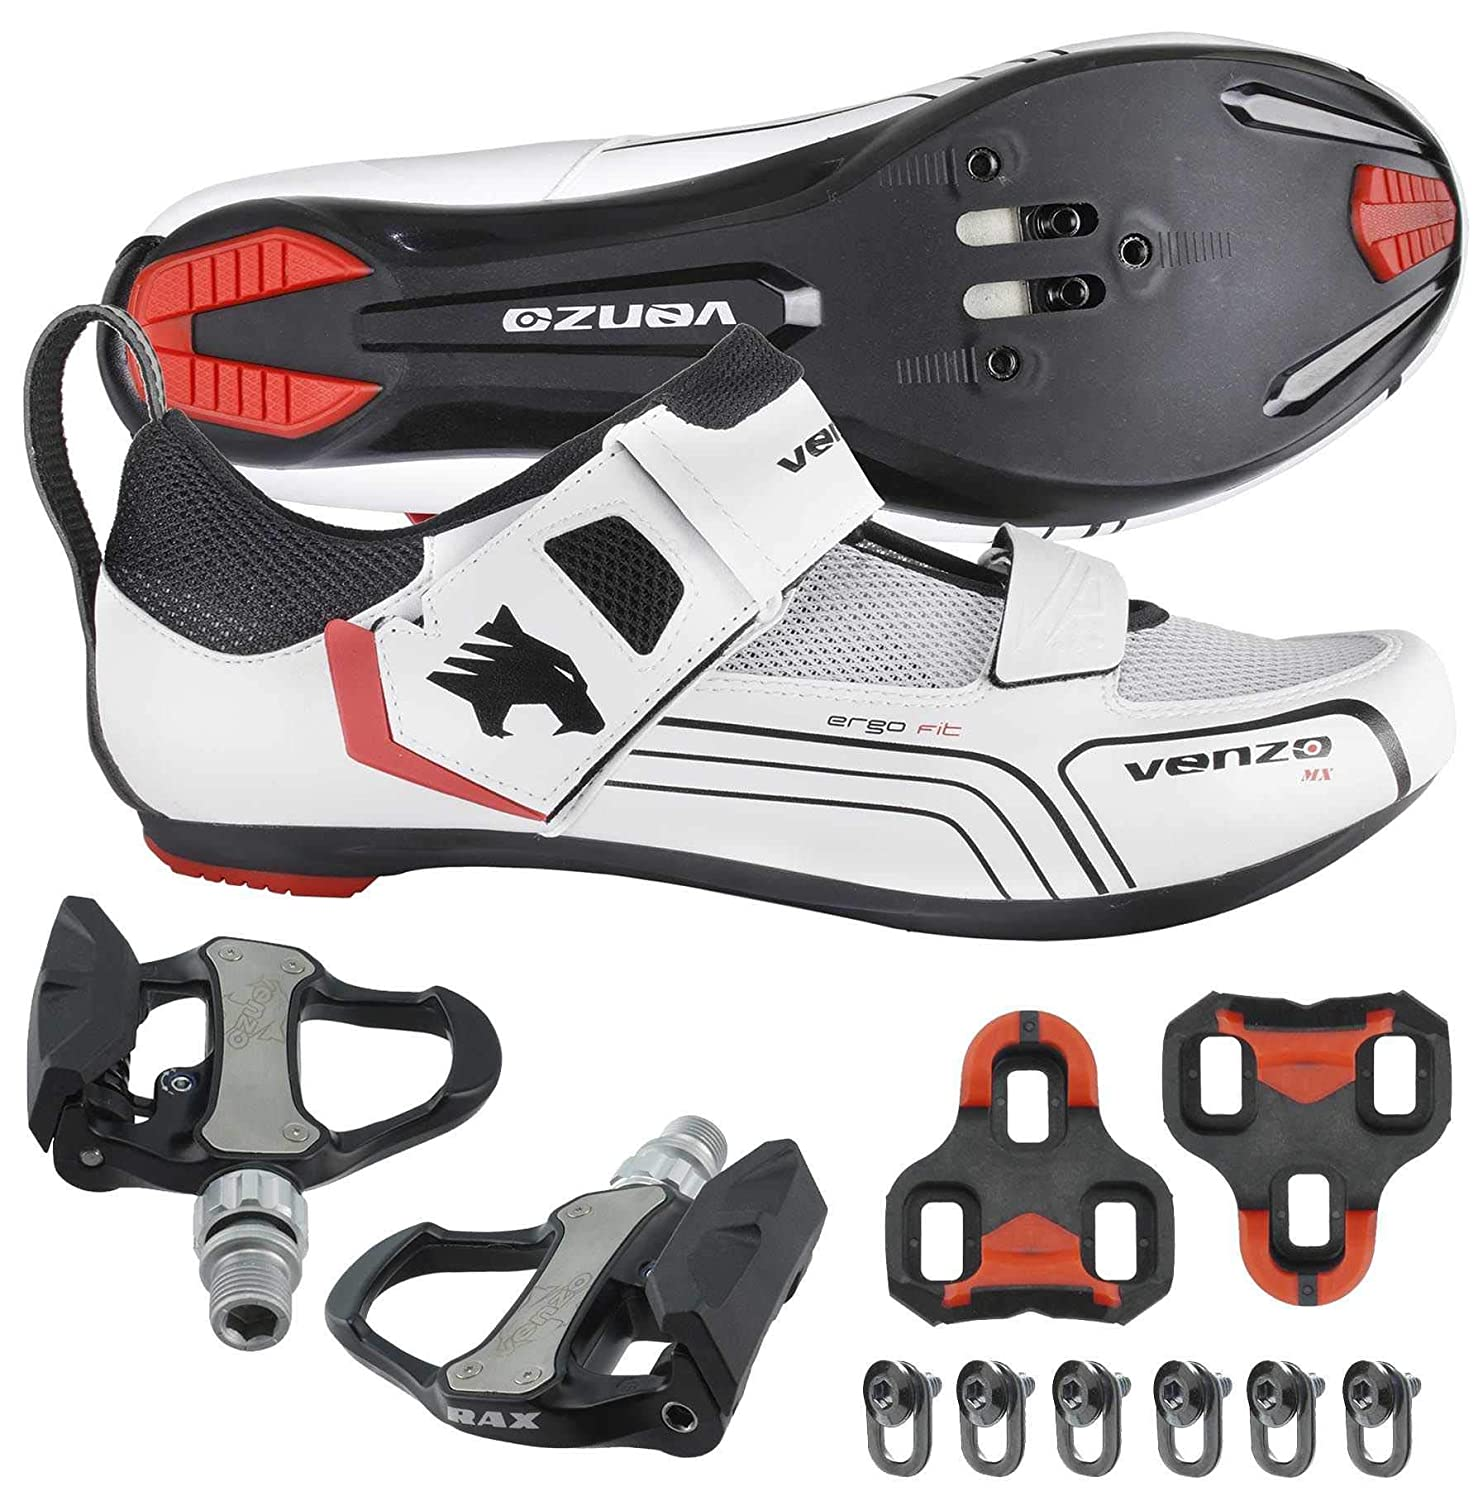 Venzo Cycling Bicycle Bike Triathlon Shoes with Pedals for Shimano SPD SL Look White